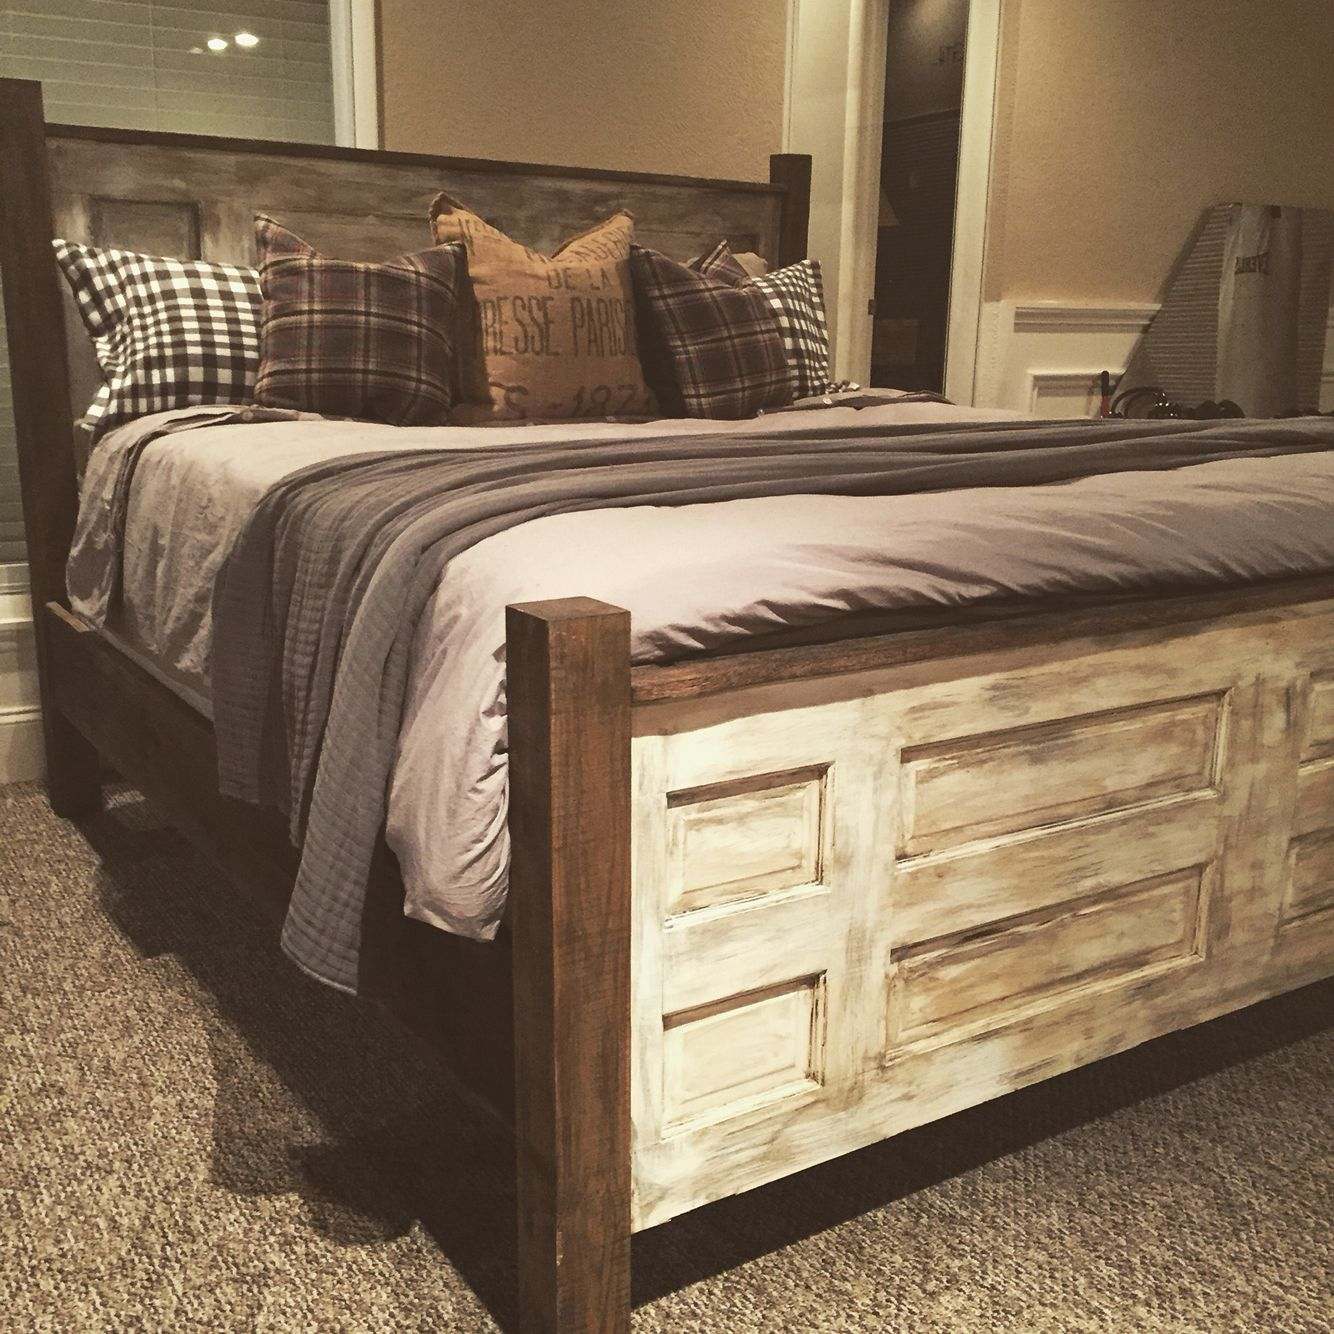 Old doors barn wood turned into a king bed bed ideas pinterest